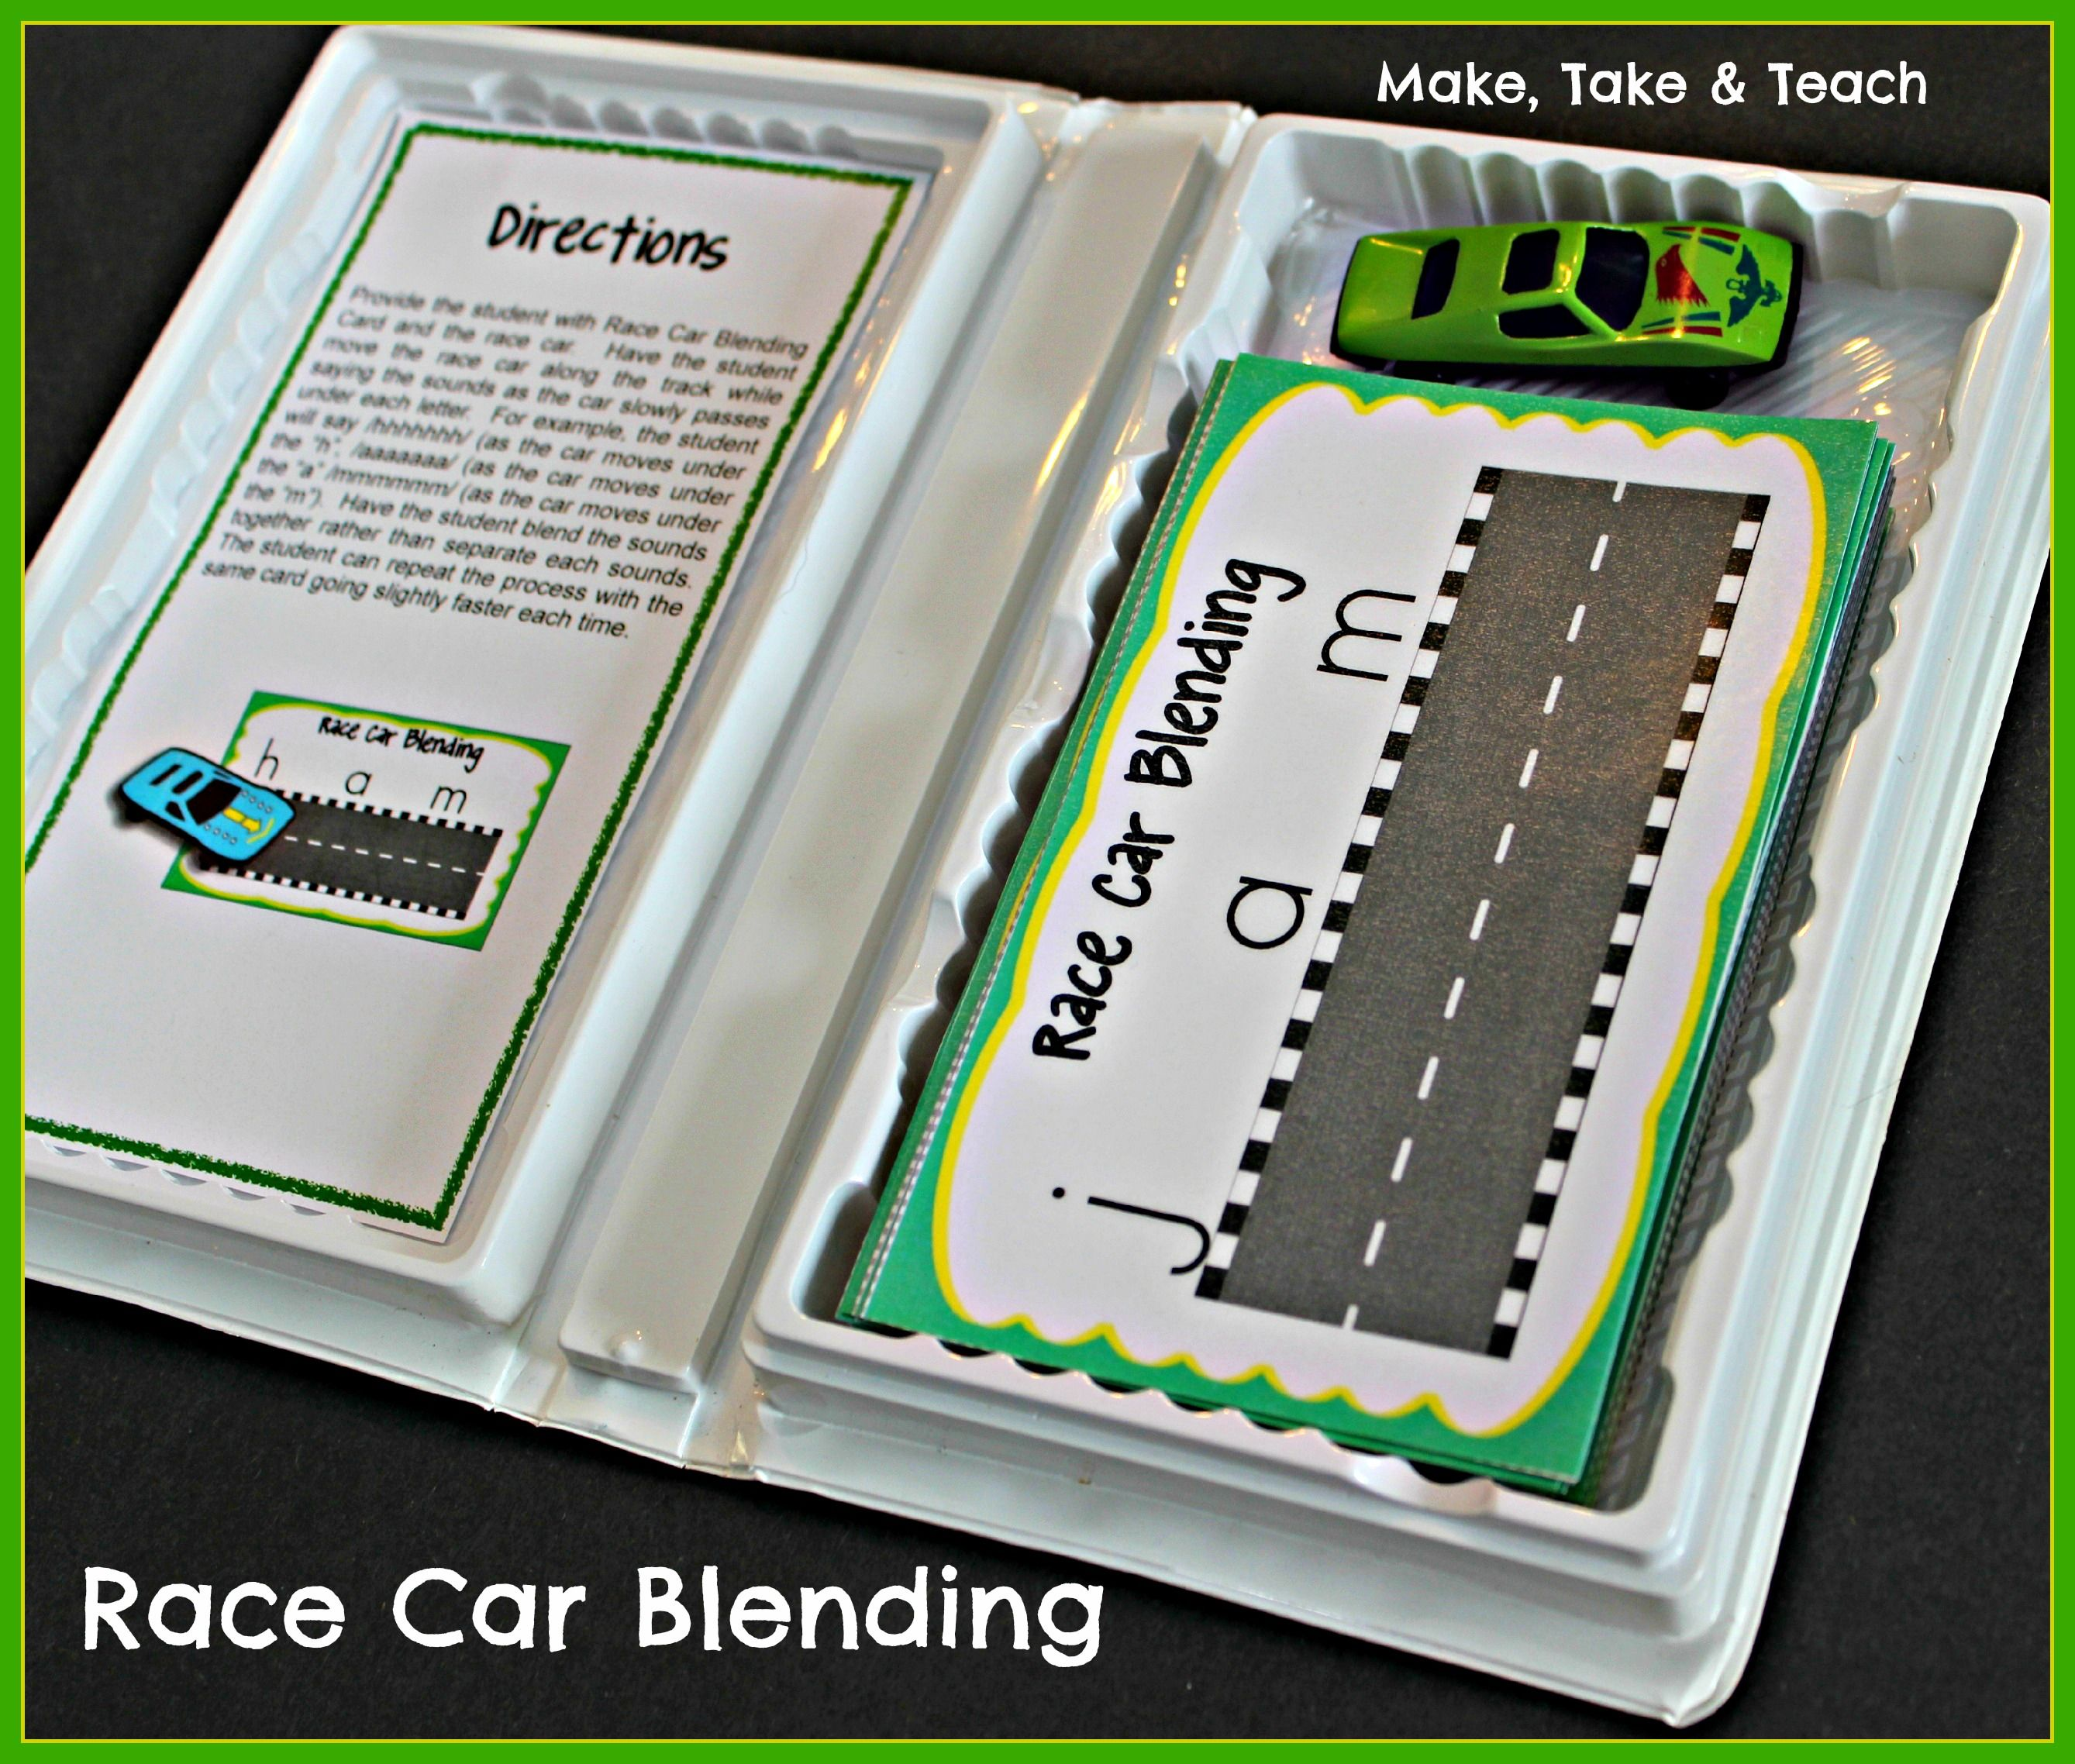 Race Car Blending Great Activity For Teaching Students To